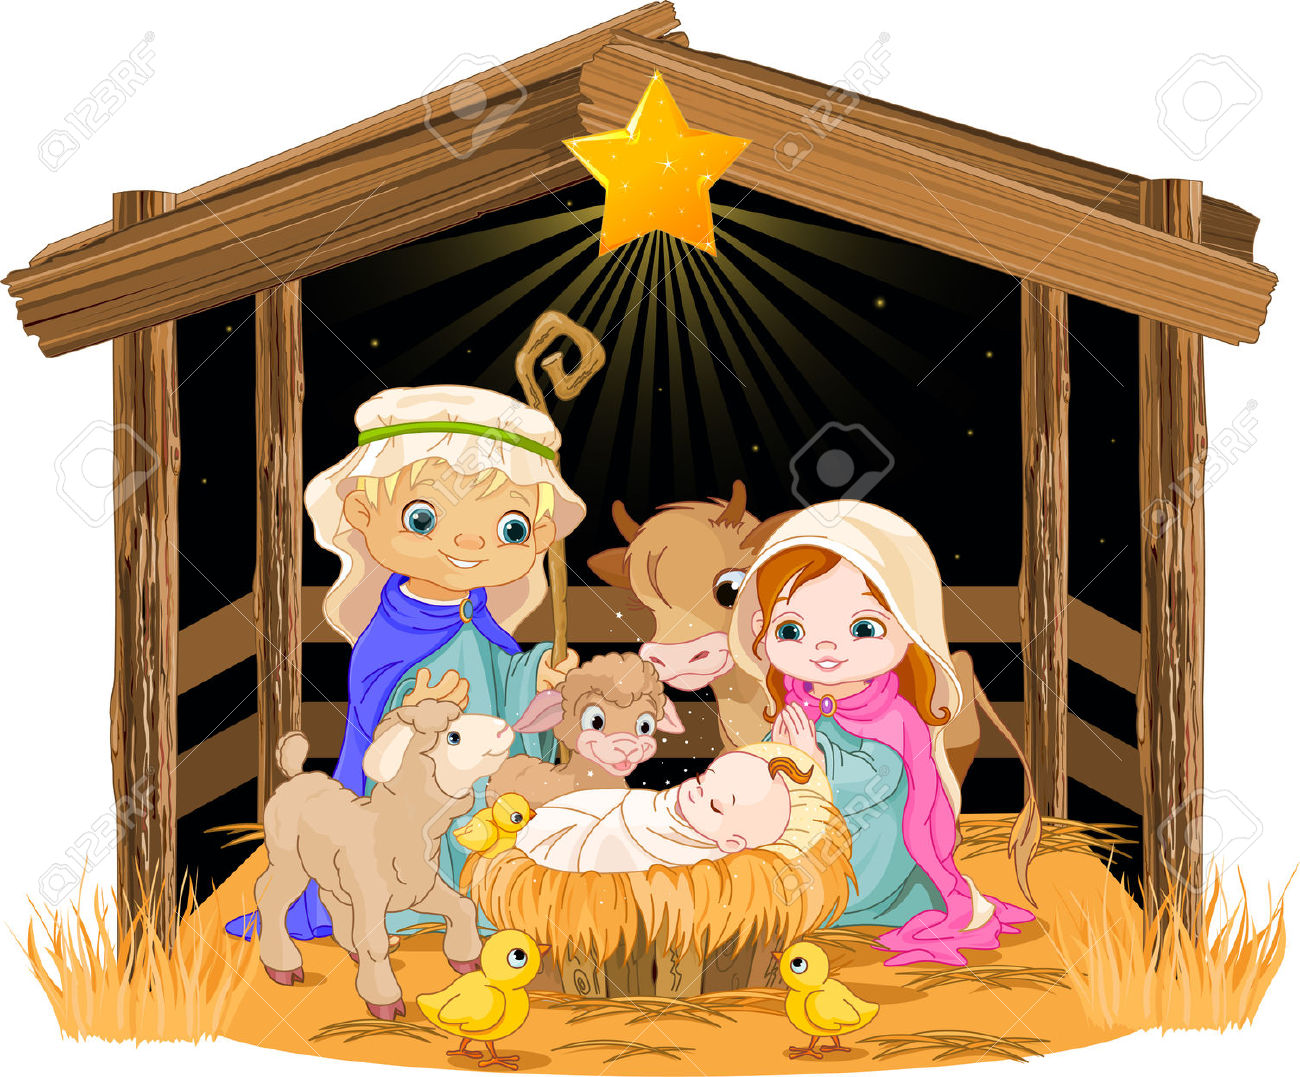 3,312 Nativity Scene Stock Vector Illustration And Royalty Free.